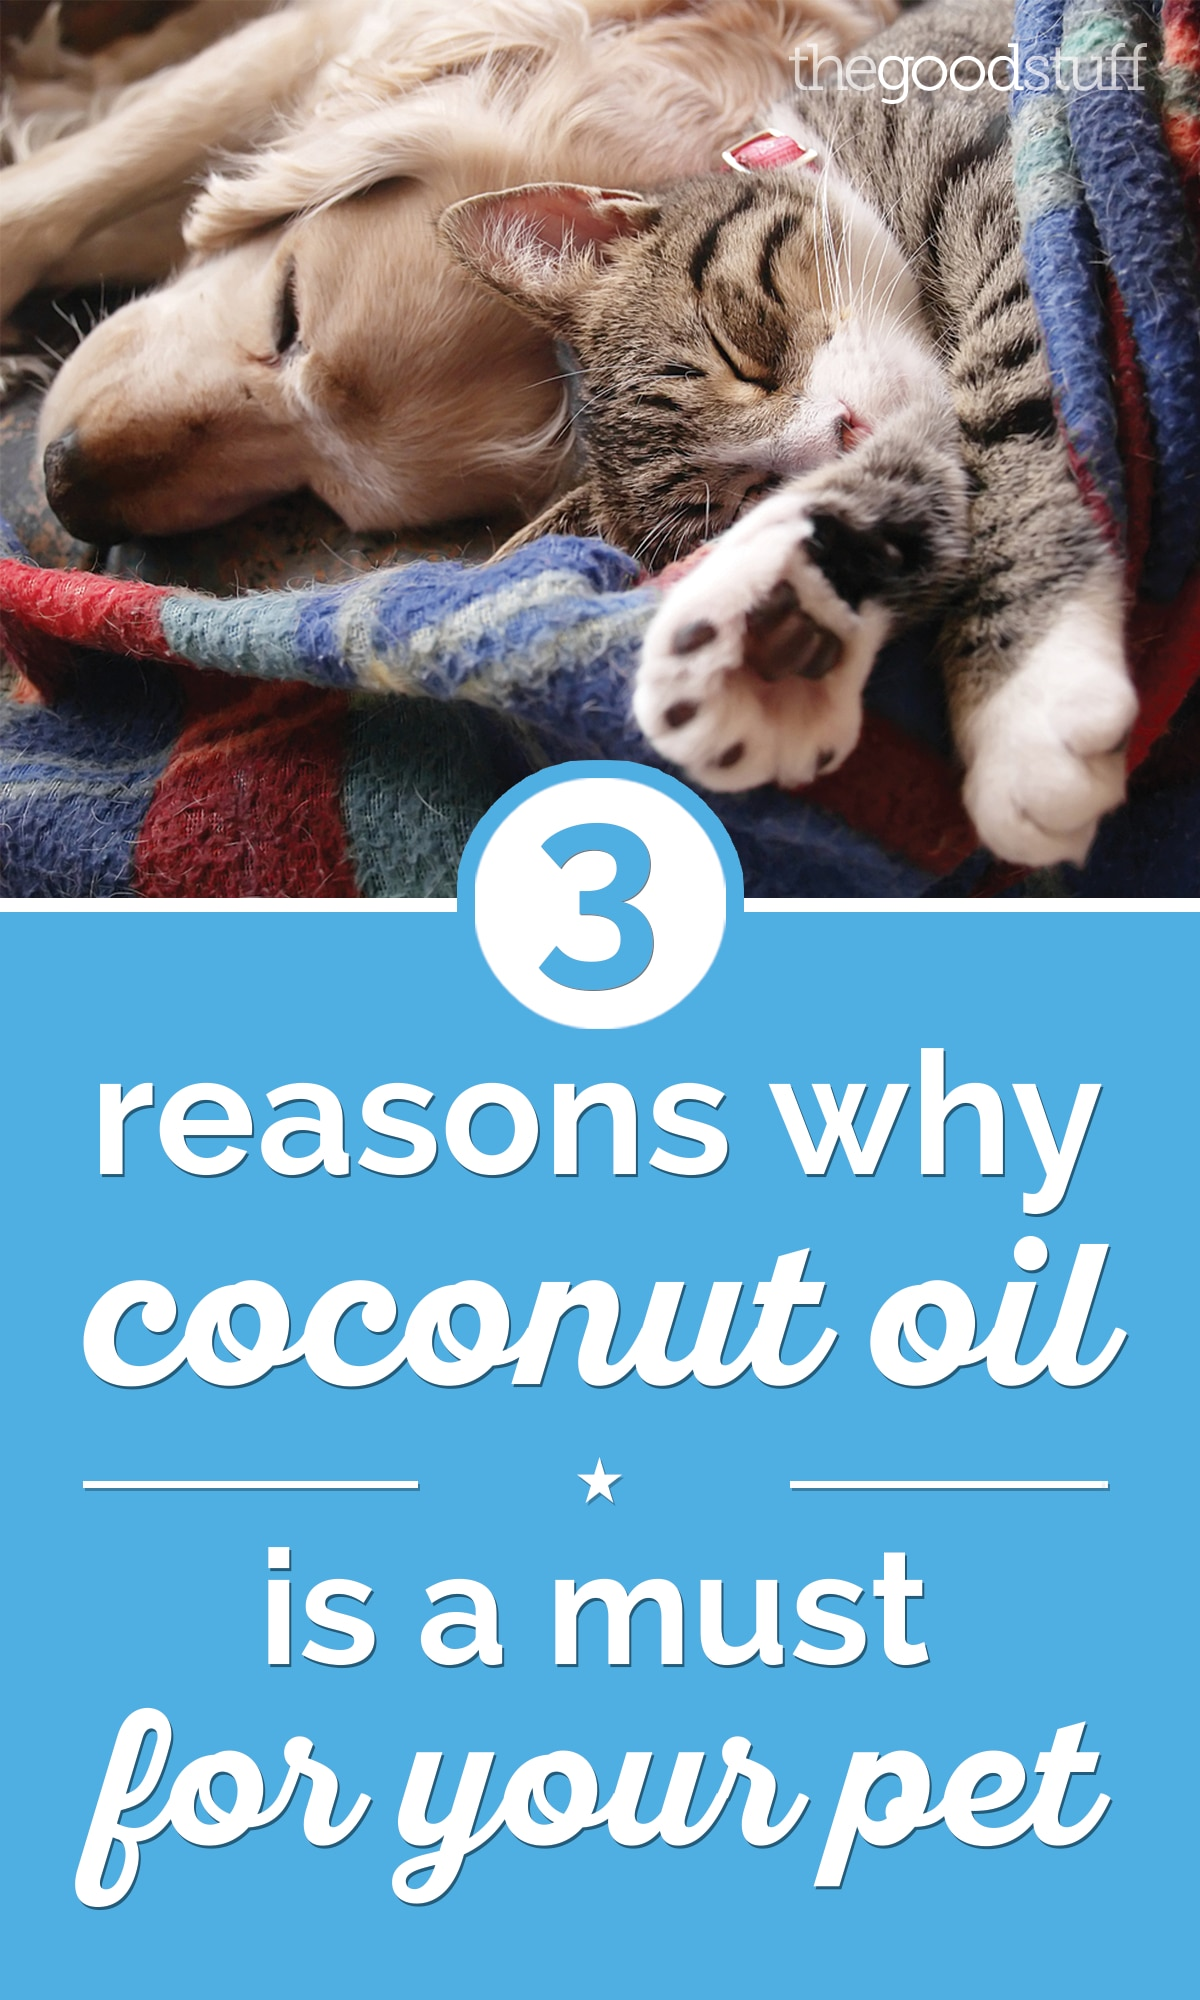 3 Reasons Why Coconut Oil for Dogs & Cats is Amazing | thegoodstuff